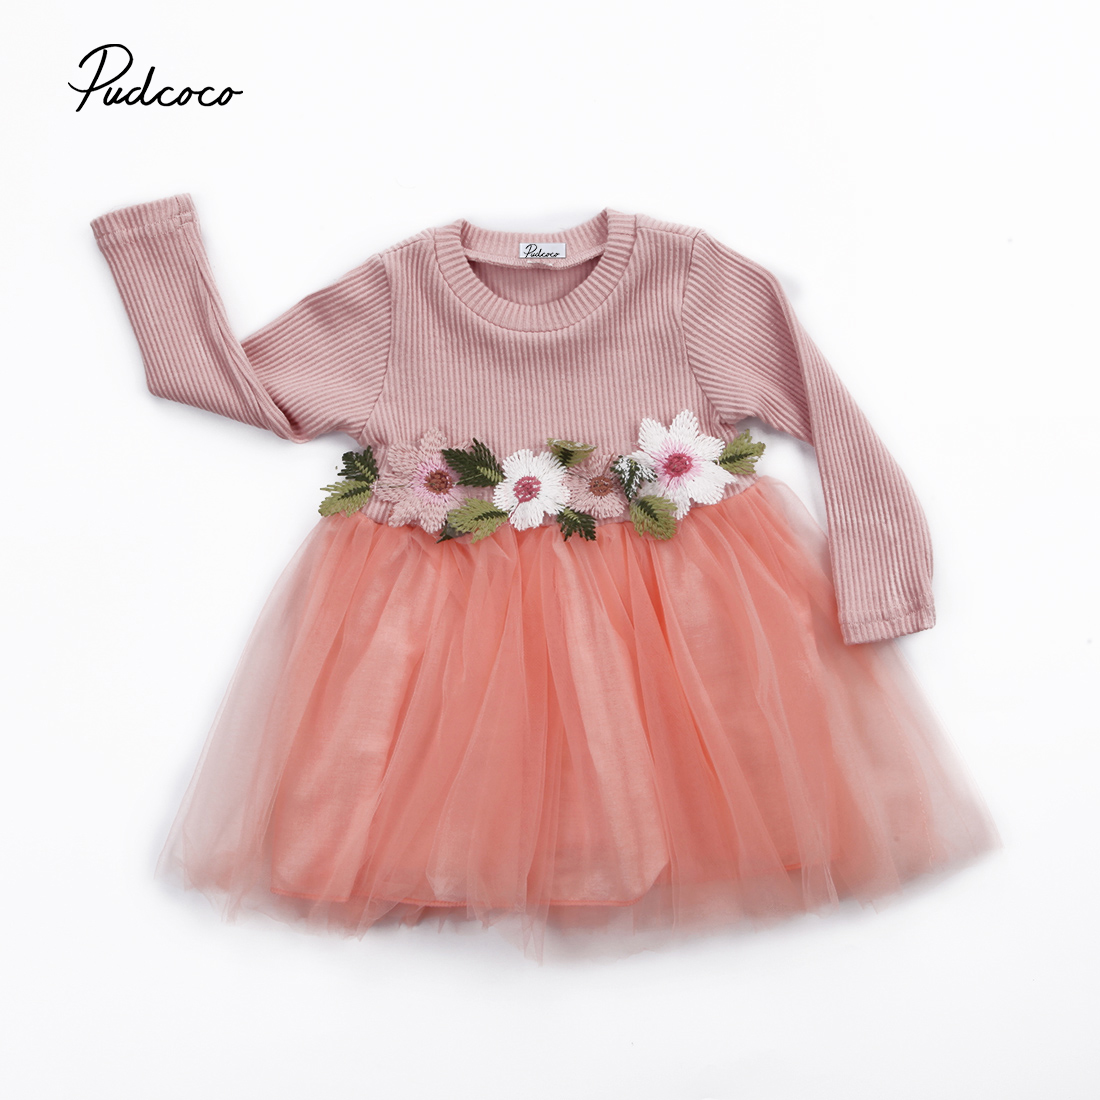 Pudcoco Toddler Lovely Baby Girls Long Sleeve Appliques Flower Lace Party Prom Tulle Princess Dresses toddler kids baby girls boho long foral princess party dress prom beach maxi sundress print lovely casual long sleeve dresses